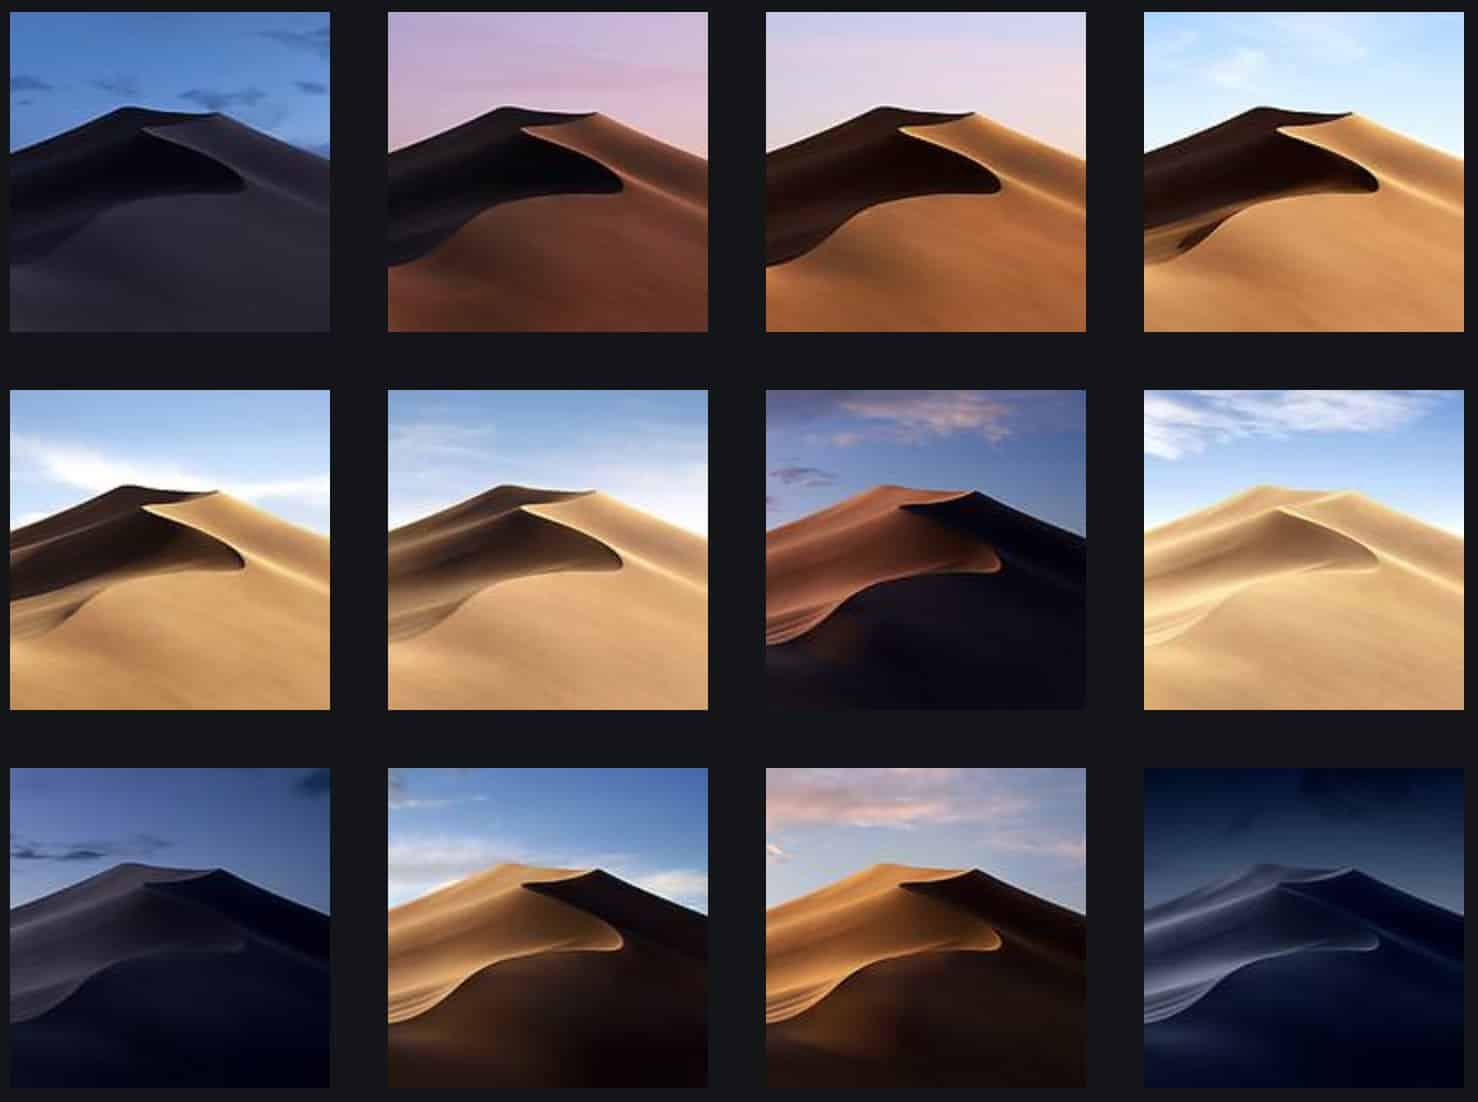 Jamf Announces Day-Zero Support for Apple's Release of macOS Mojave